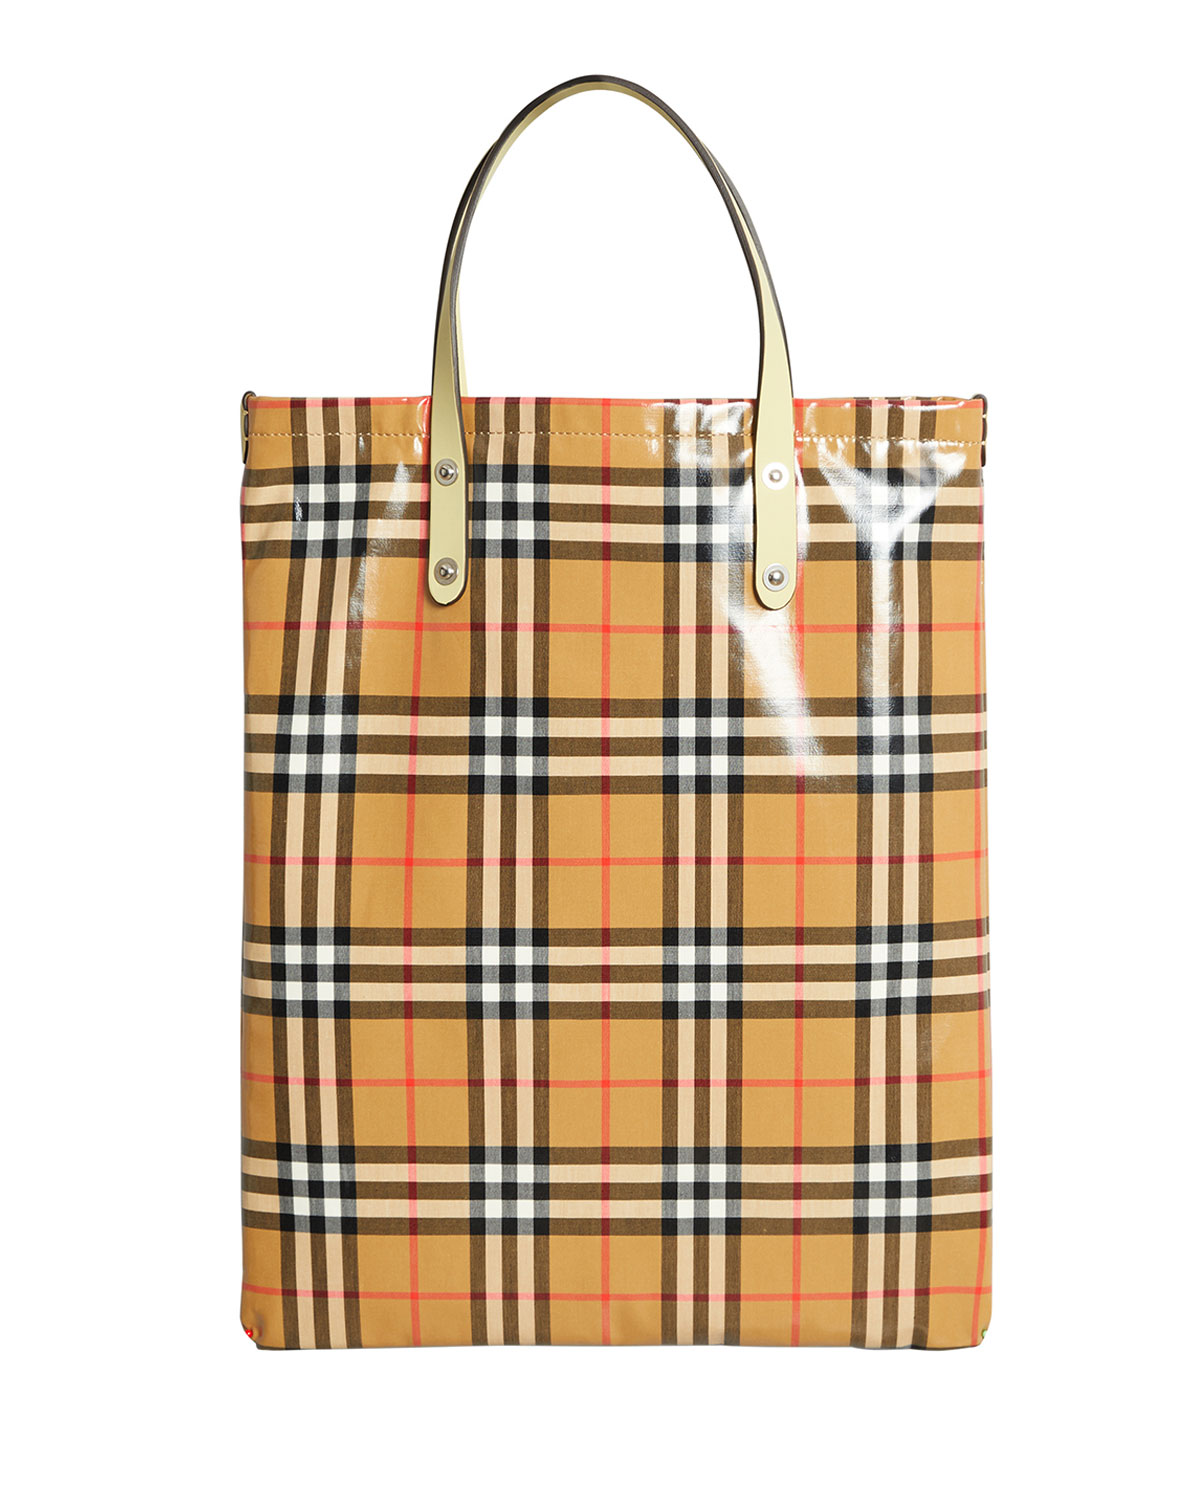 ab7cc567bf Burberry Coated Vintage Check Medium Shopper Tote Bag | Neiman Marcus